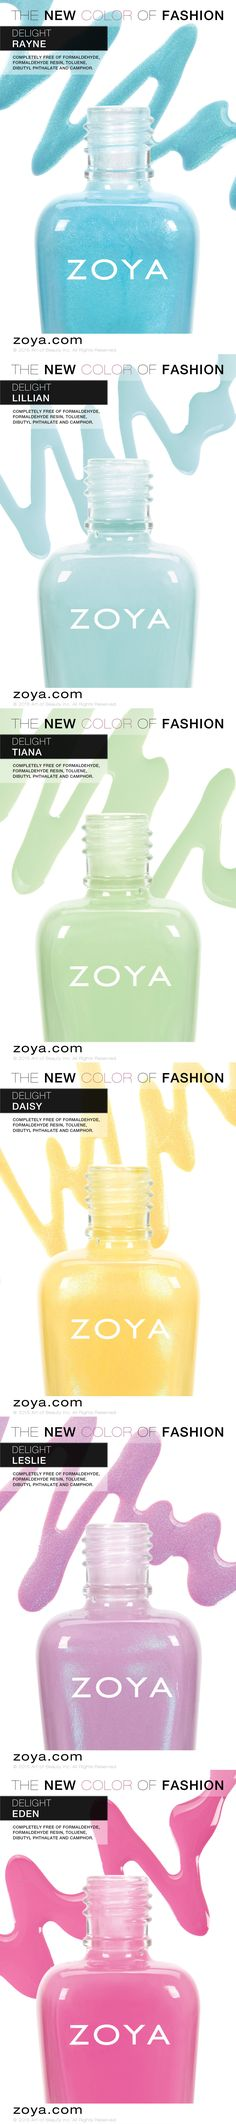 The Zoya Delight Collection - Spring 2015